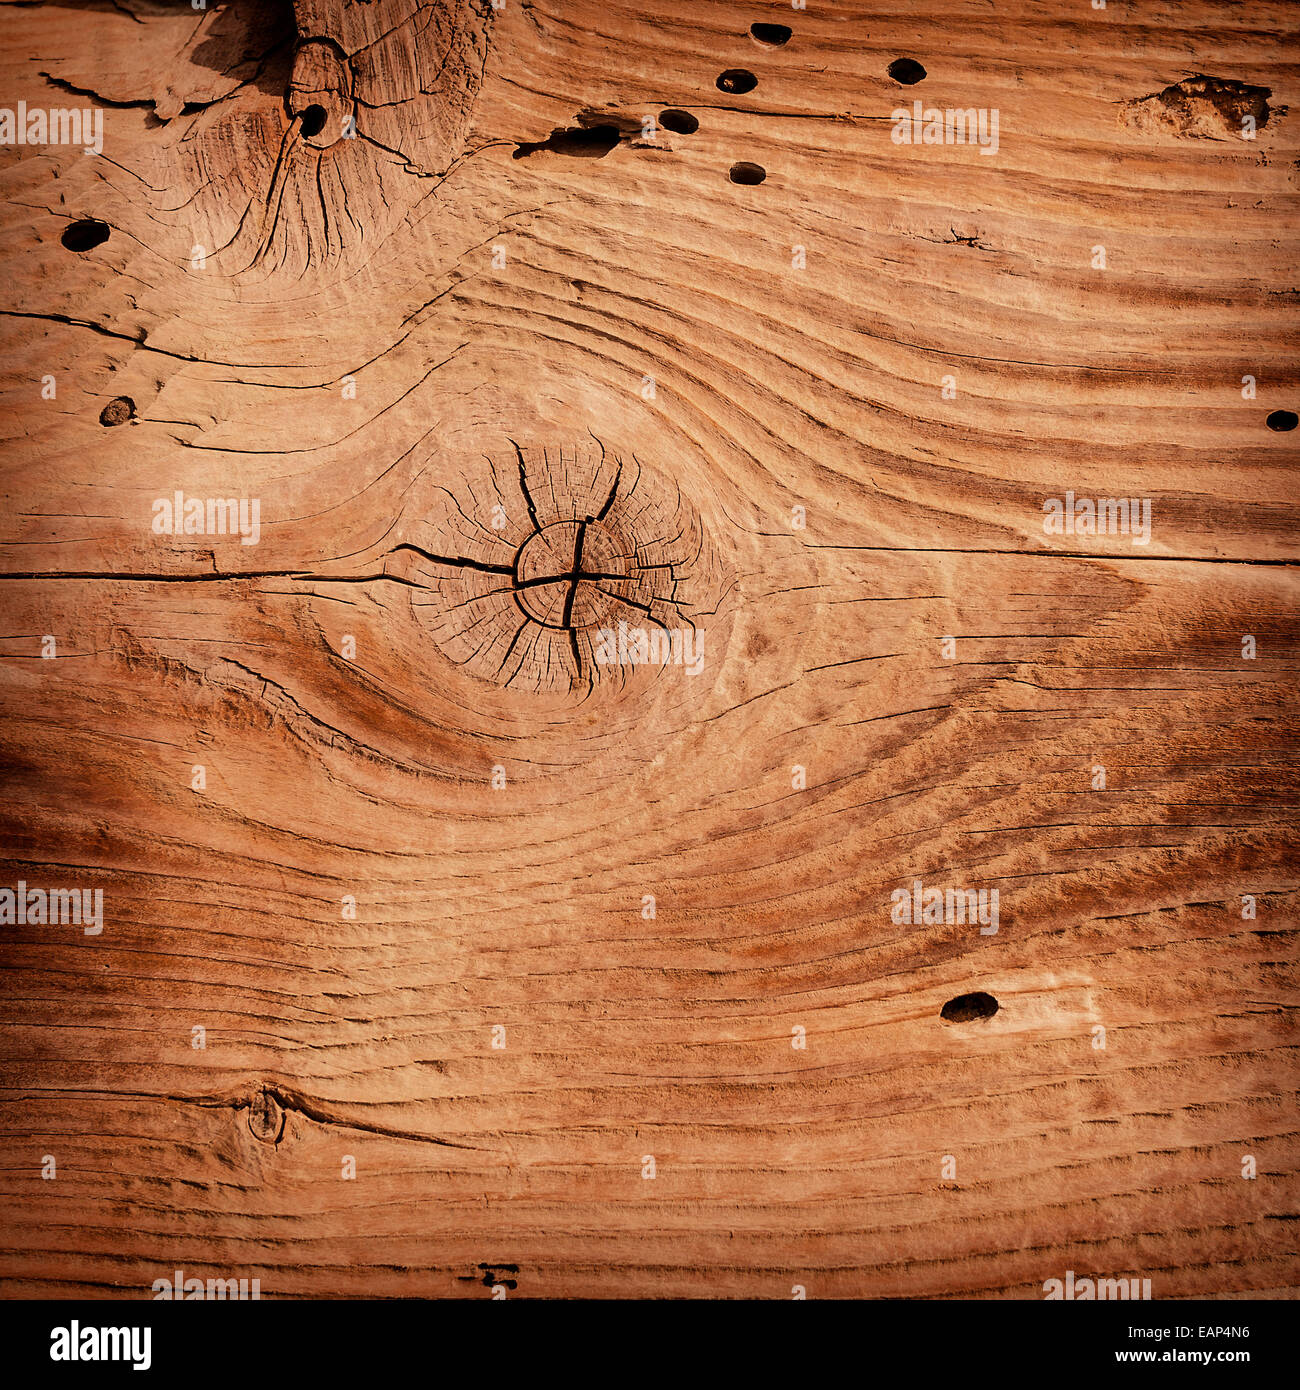 Wooden background texture. A square abstract photo. - Stock Image